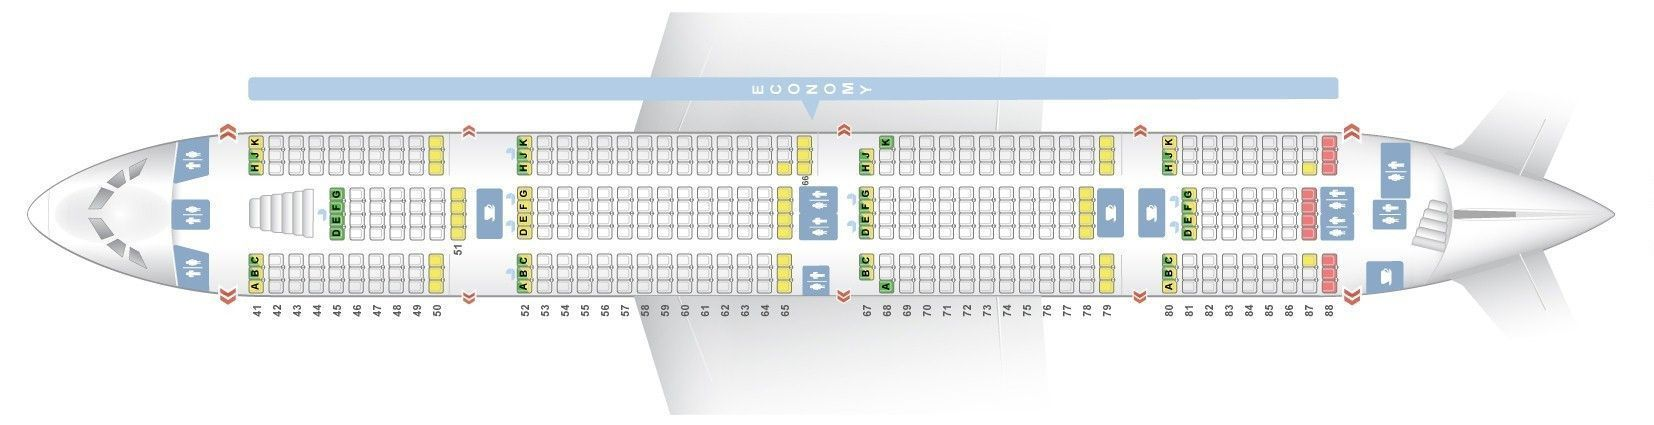 Emirates A380 Seat Map 50 Emirates Flight Seat Layout Jl0x